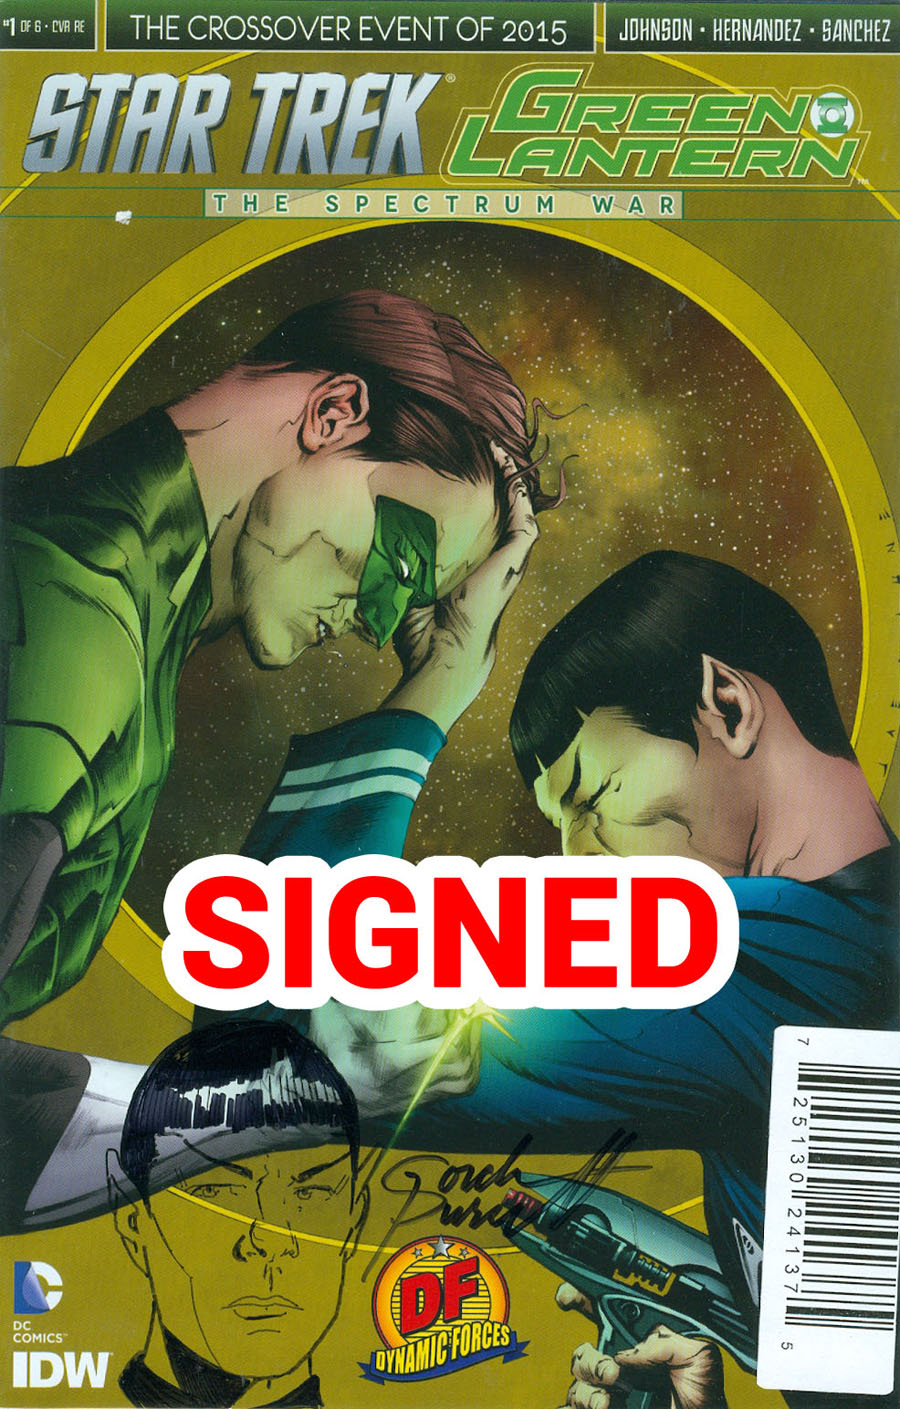 Star Trek Green Lantern #1 Cover O DF Exclusive Jae Lee Variant Cover With A Hand-Drawn Spock Head Sketch By Gordon Purcell